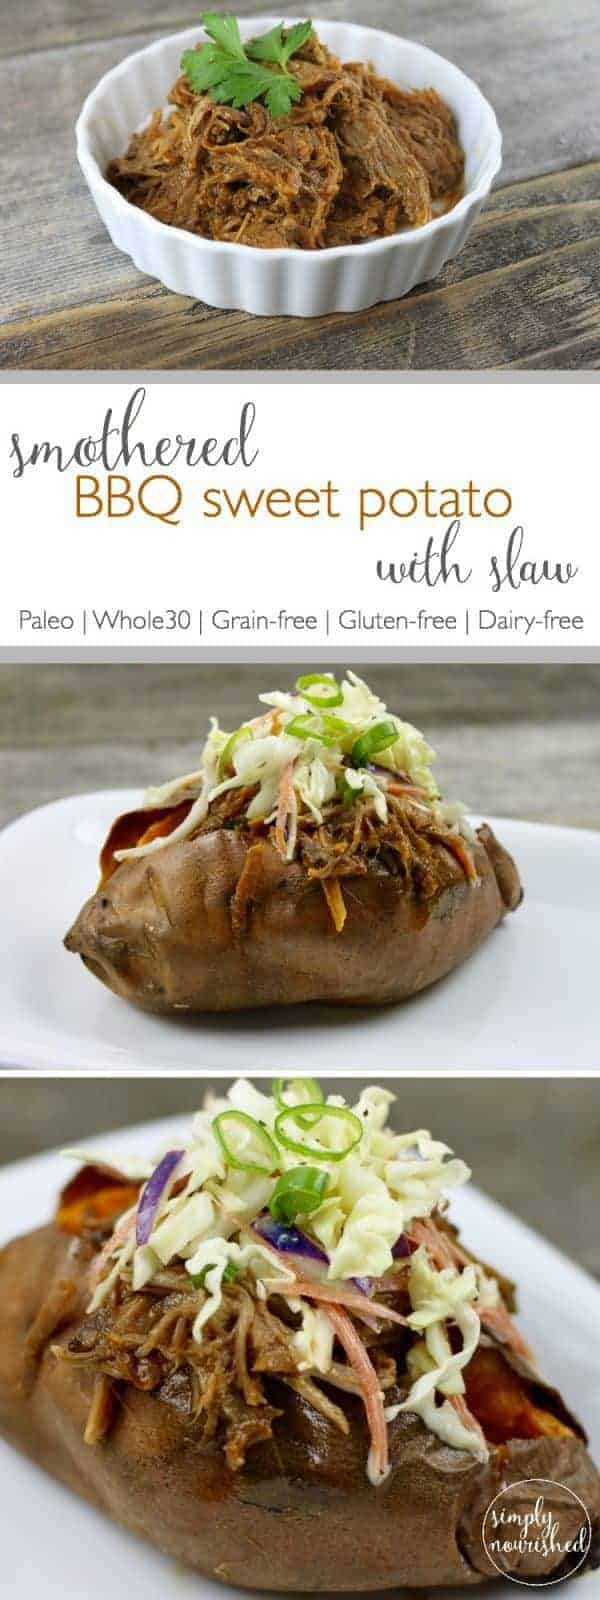 BBQ Sweet Potato with Slaw | Everything you need is right here in one dish! This baked sweet potato topped with tangy BBQ beef and creamy, crunchy coleslaw is easy to pull together with a little advance prep so you can get dinner on the table fast | https://therealfoodrds.com/smothered-bbq-sweet-potato-with-slaw-recipe/